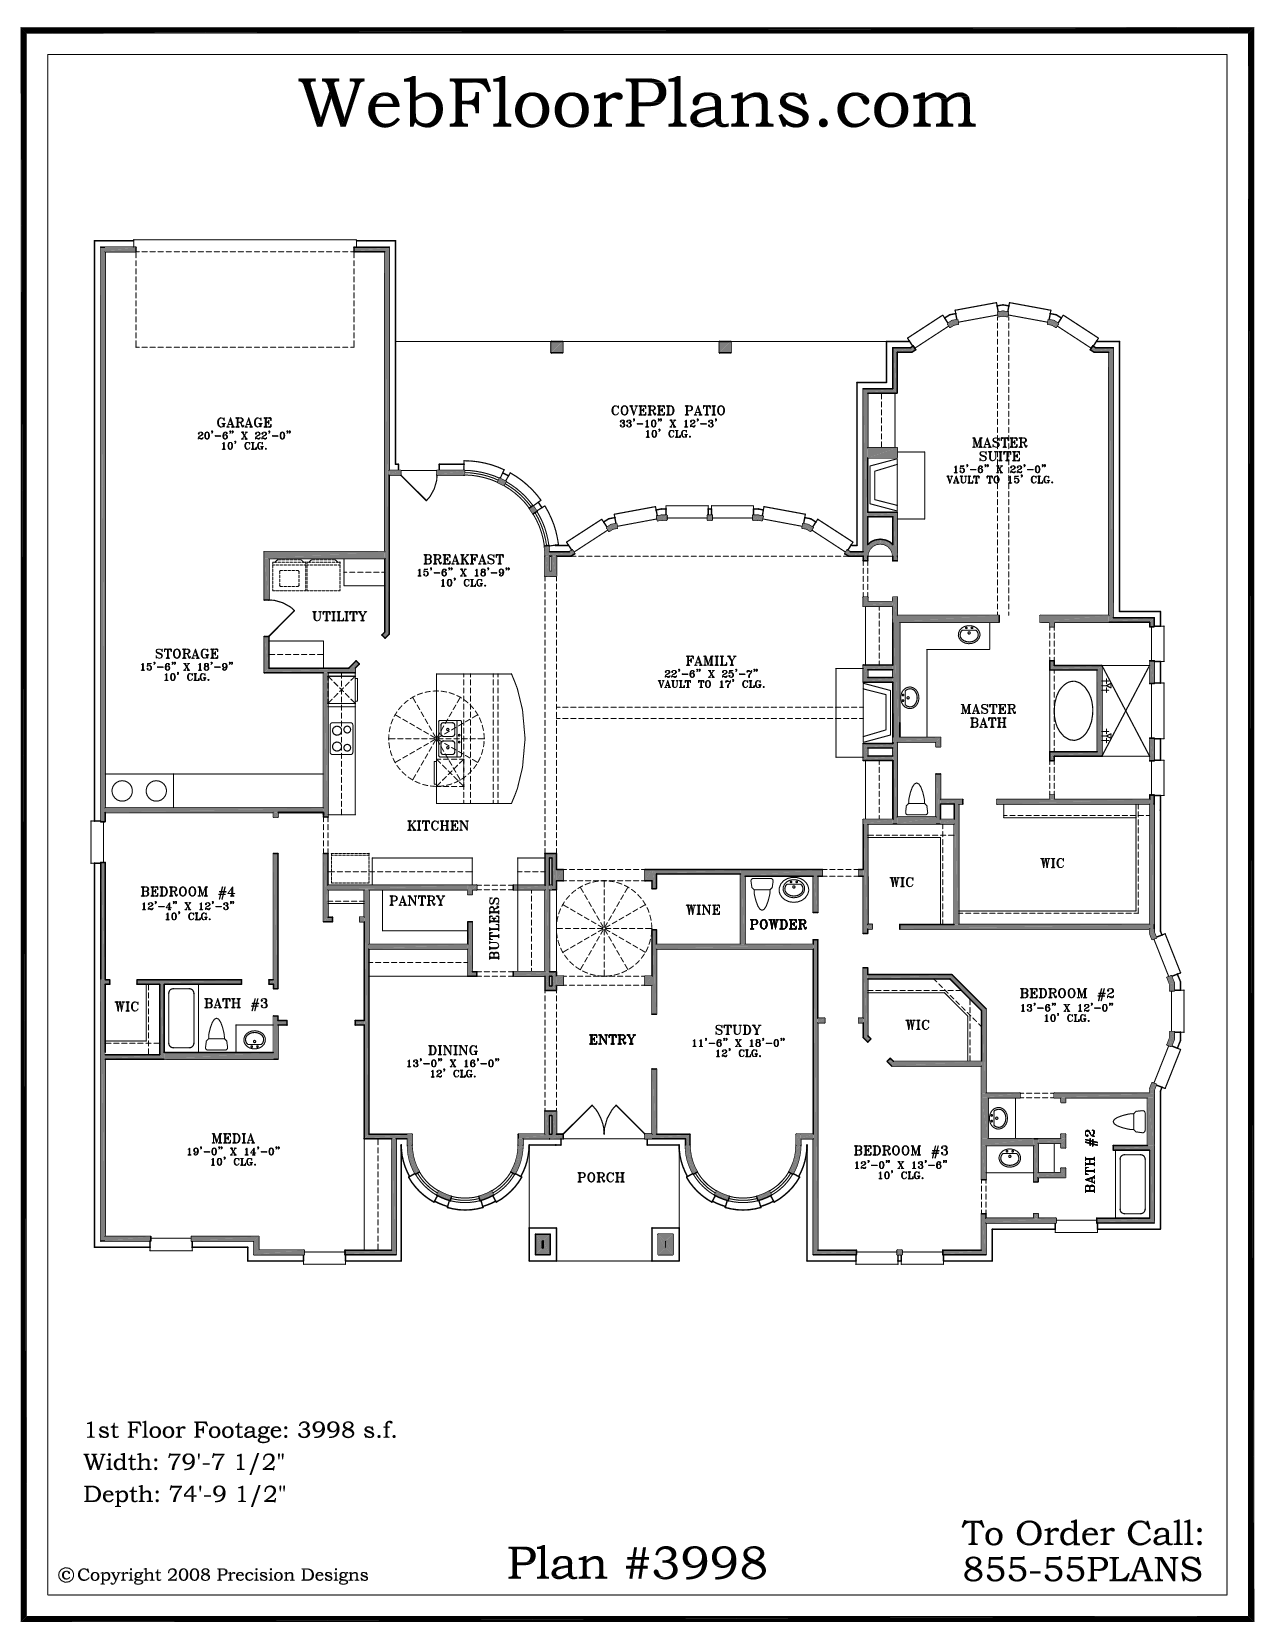 White Single Floor House Designs on wall house designs, cottage house designs, single floor cottage, bungalow designs, modern house elevation designs, single bar designs, ranch house designs, single floor building, single level floor plans, simple modern homes designs, single story home designs, best house designs, modern zen house designs, 2015 house designs, simple house designs, one story house plan designs, beautiful house plans designs, small one room cabin interior designs, small house designs, single apartment designs,